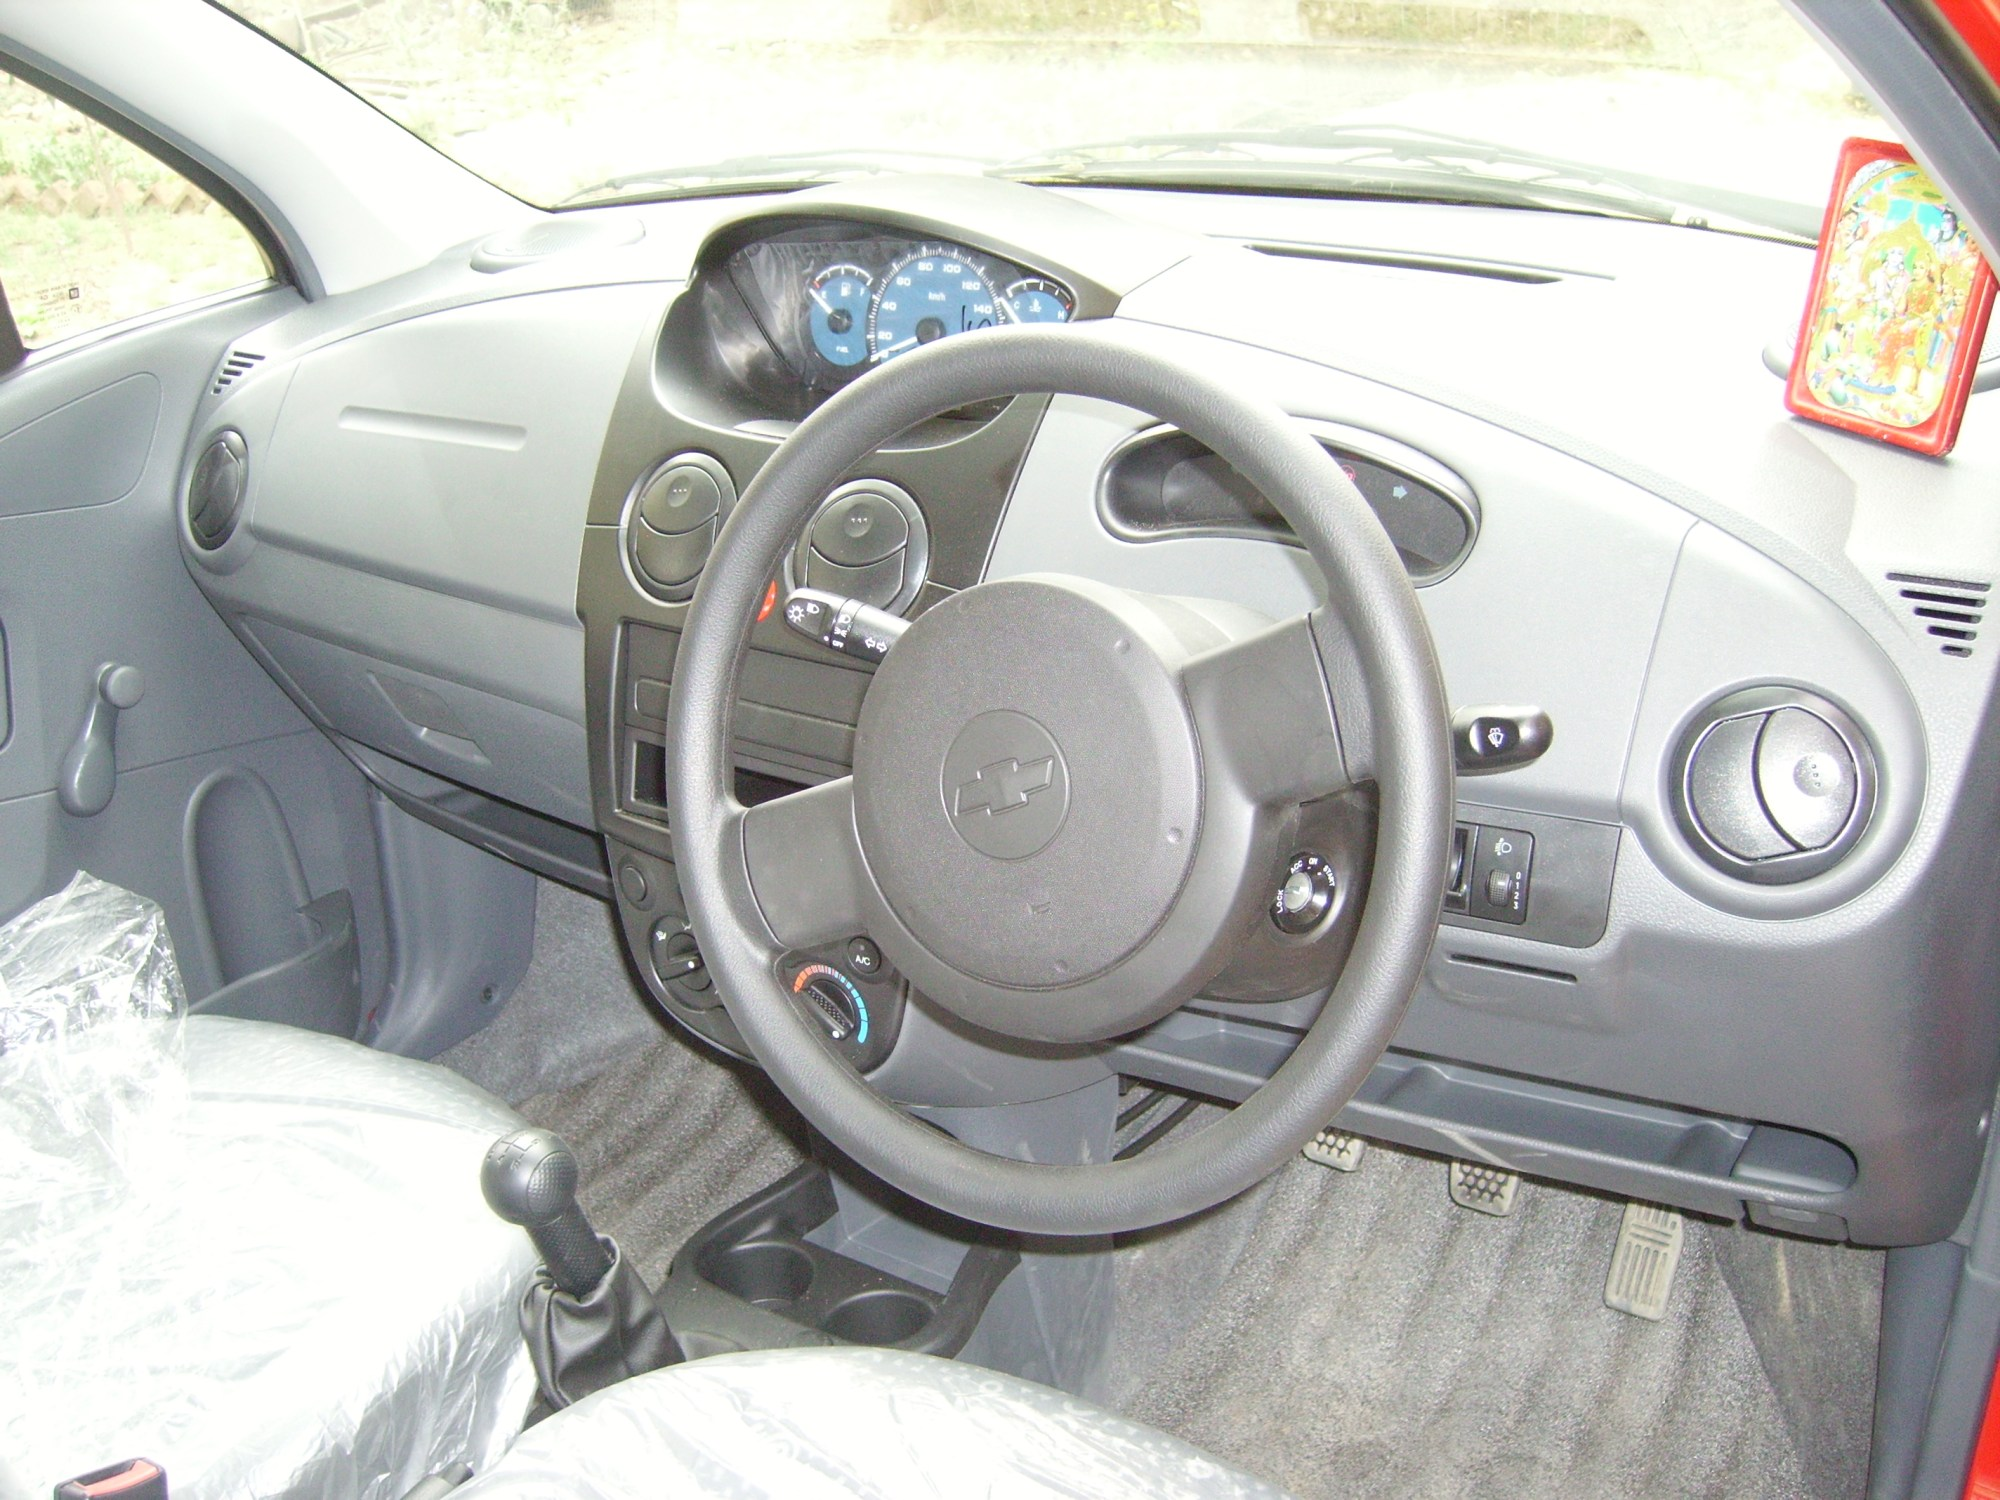 hight resolution of interior view with the centrally mounted dashboard console